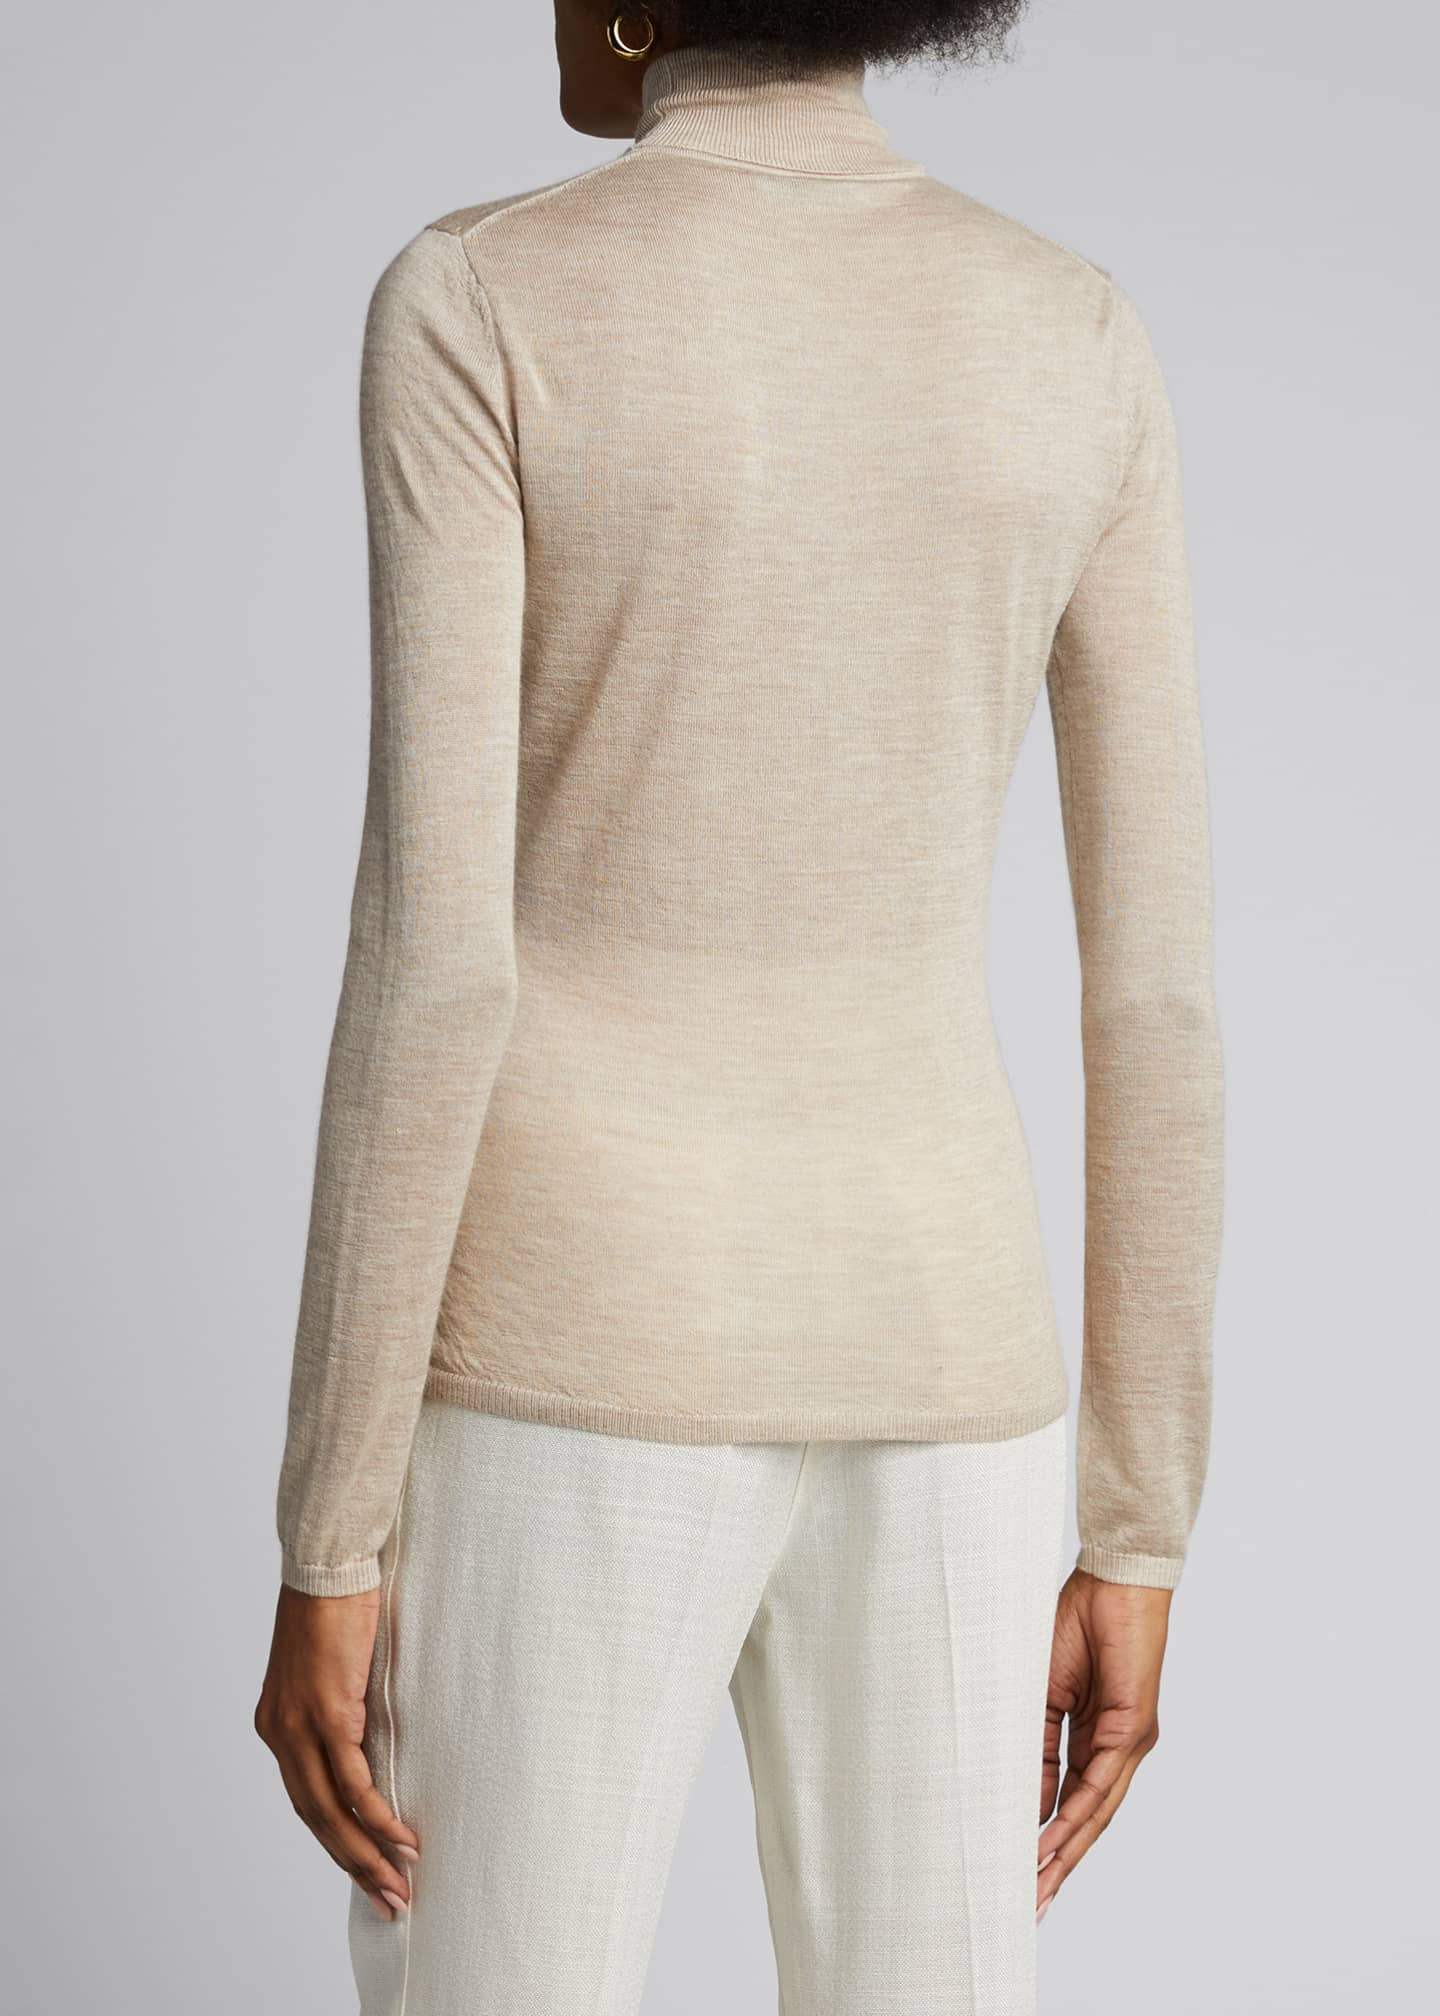 Image 2 of 5: Costa Cashmere-Silk Turtleneck Sweater